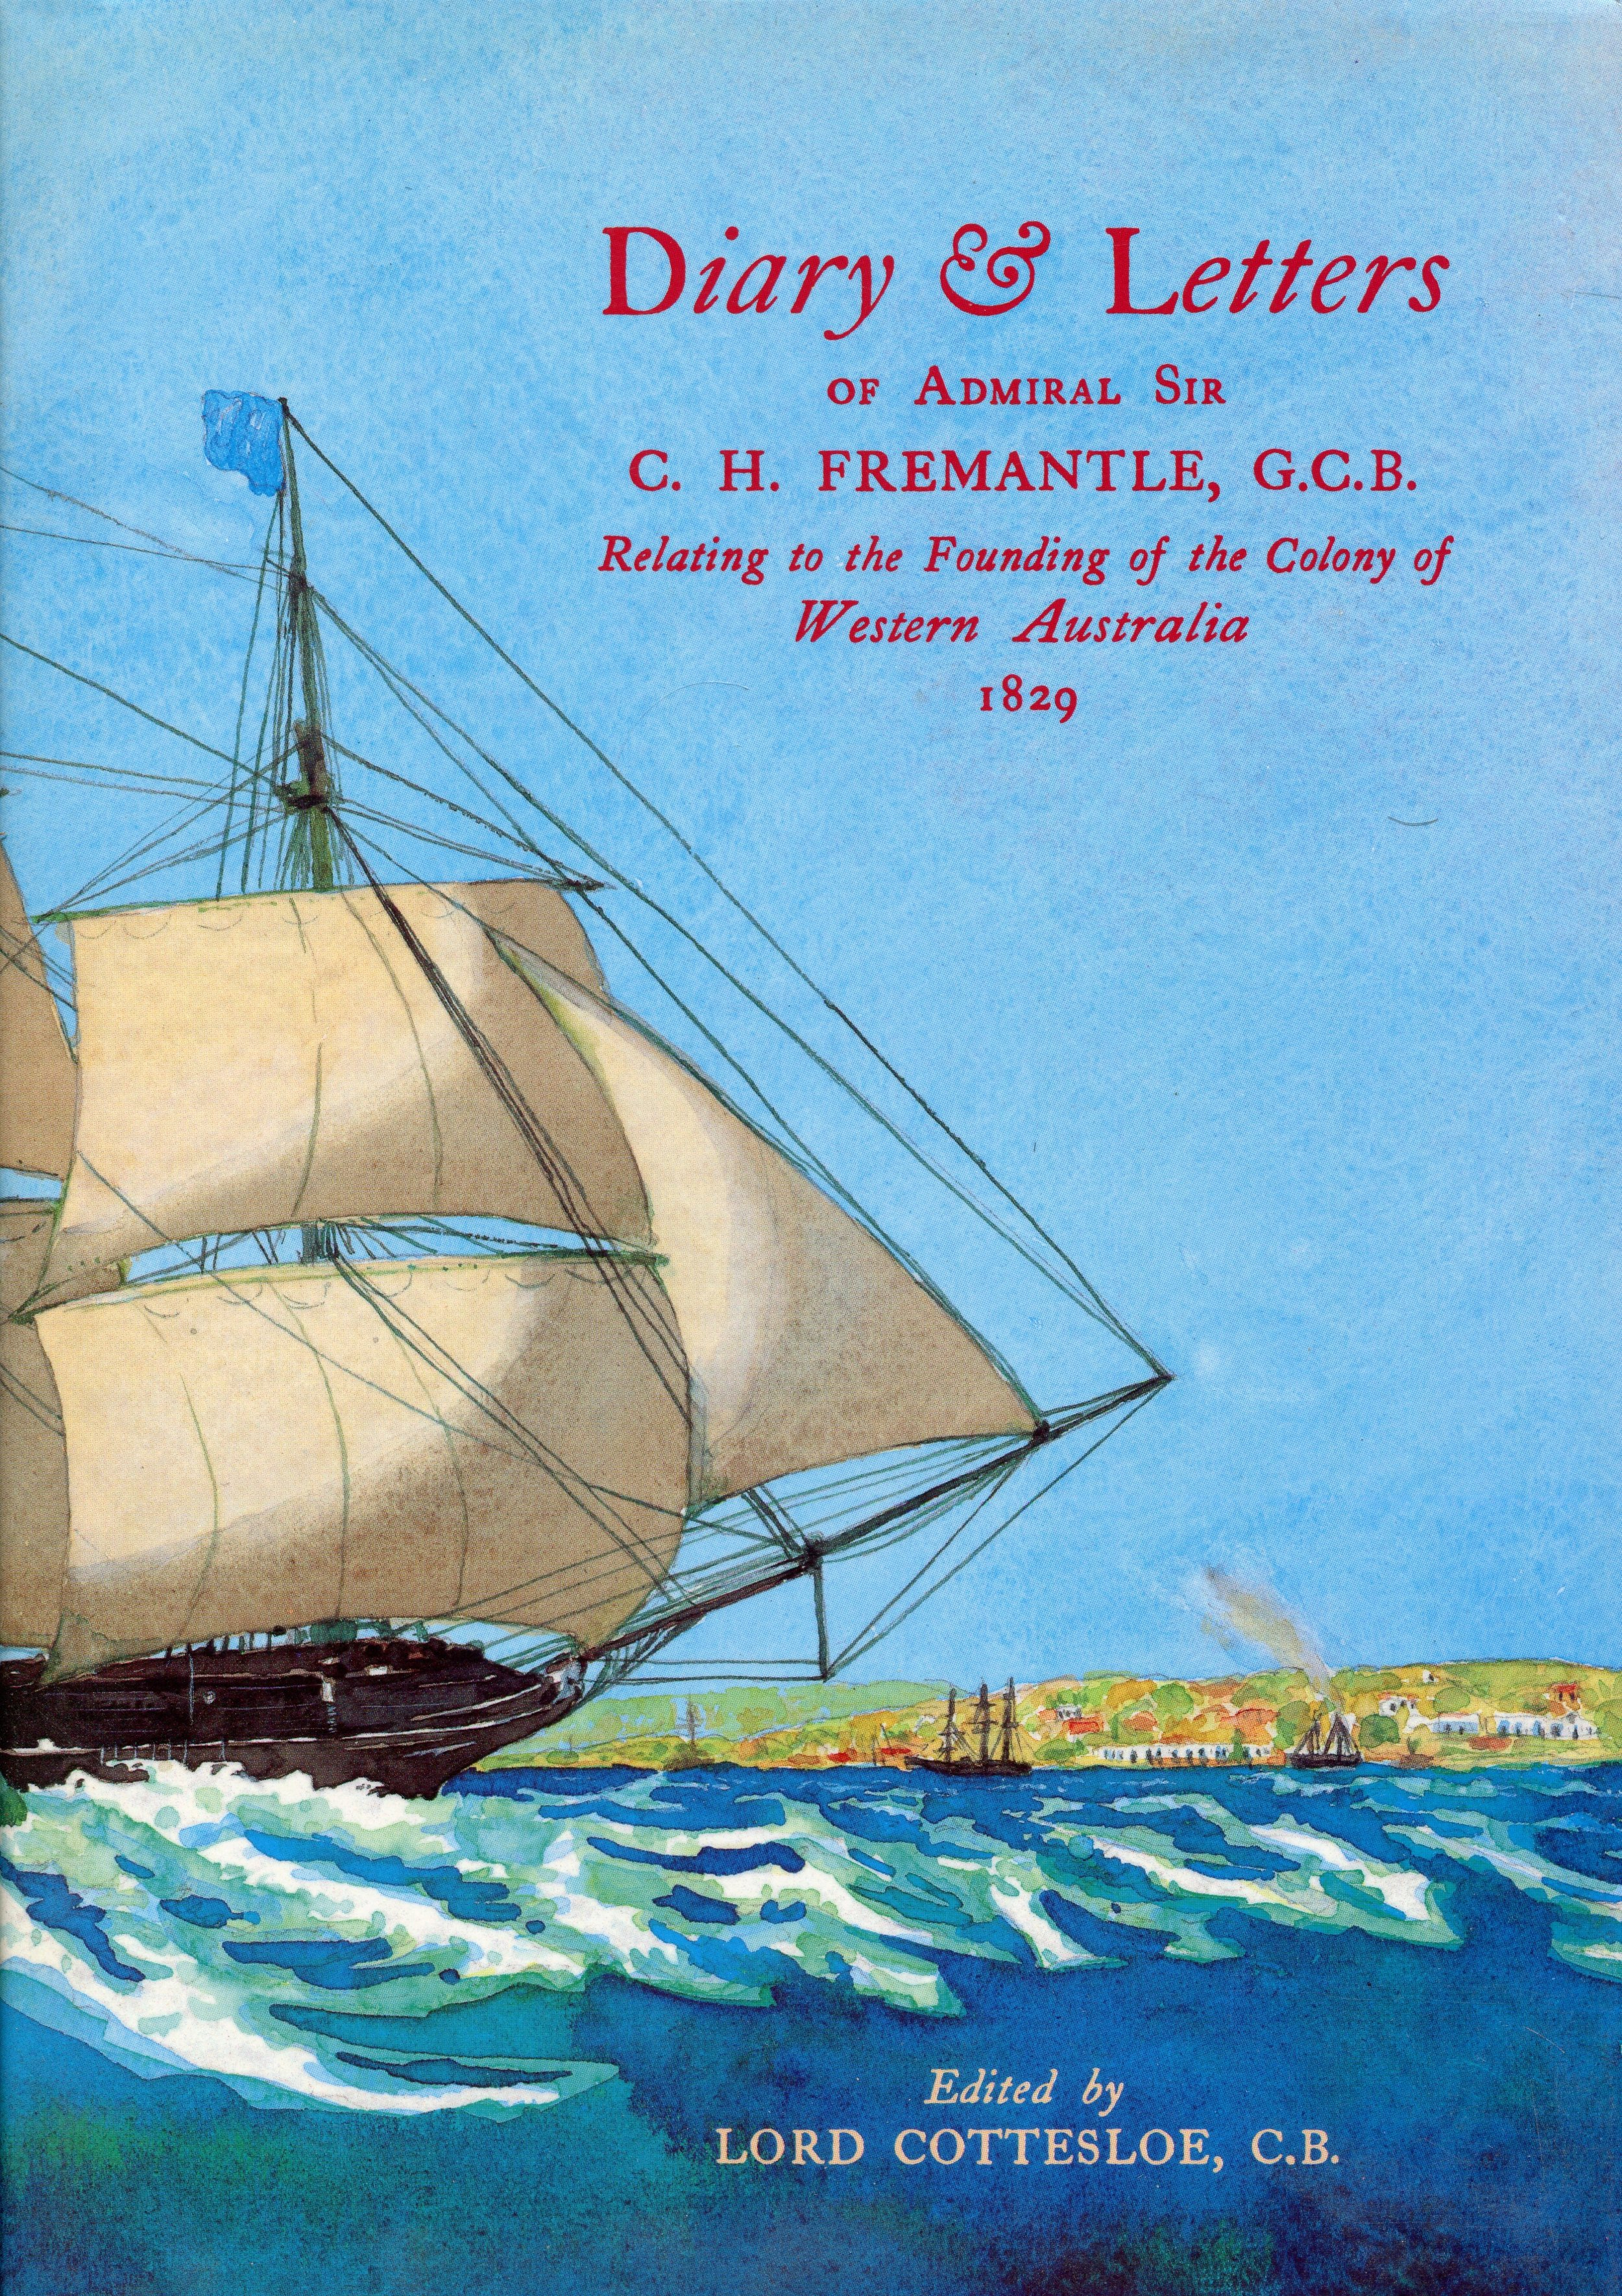 Diary _ Letters of Admiral Sir Fremantle.jpg